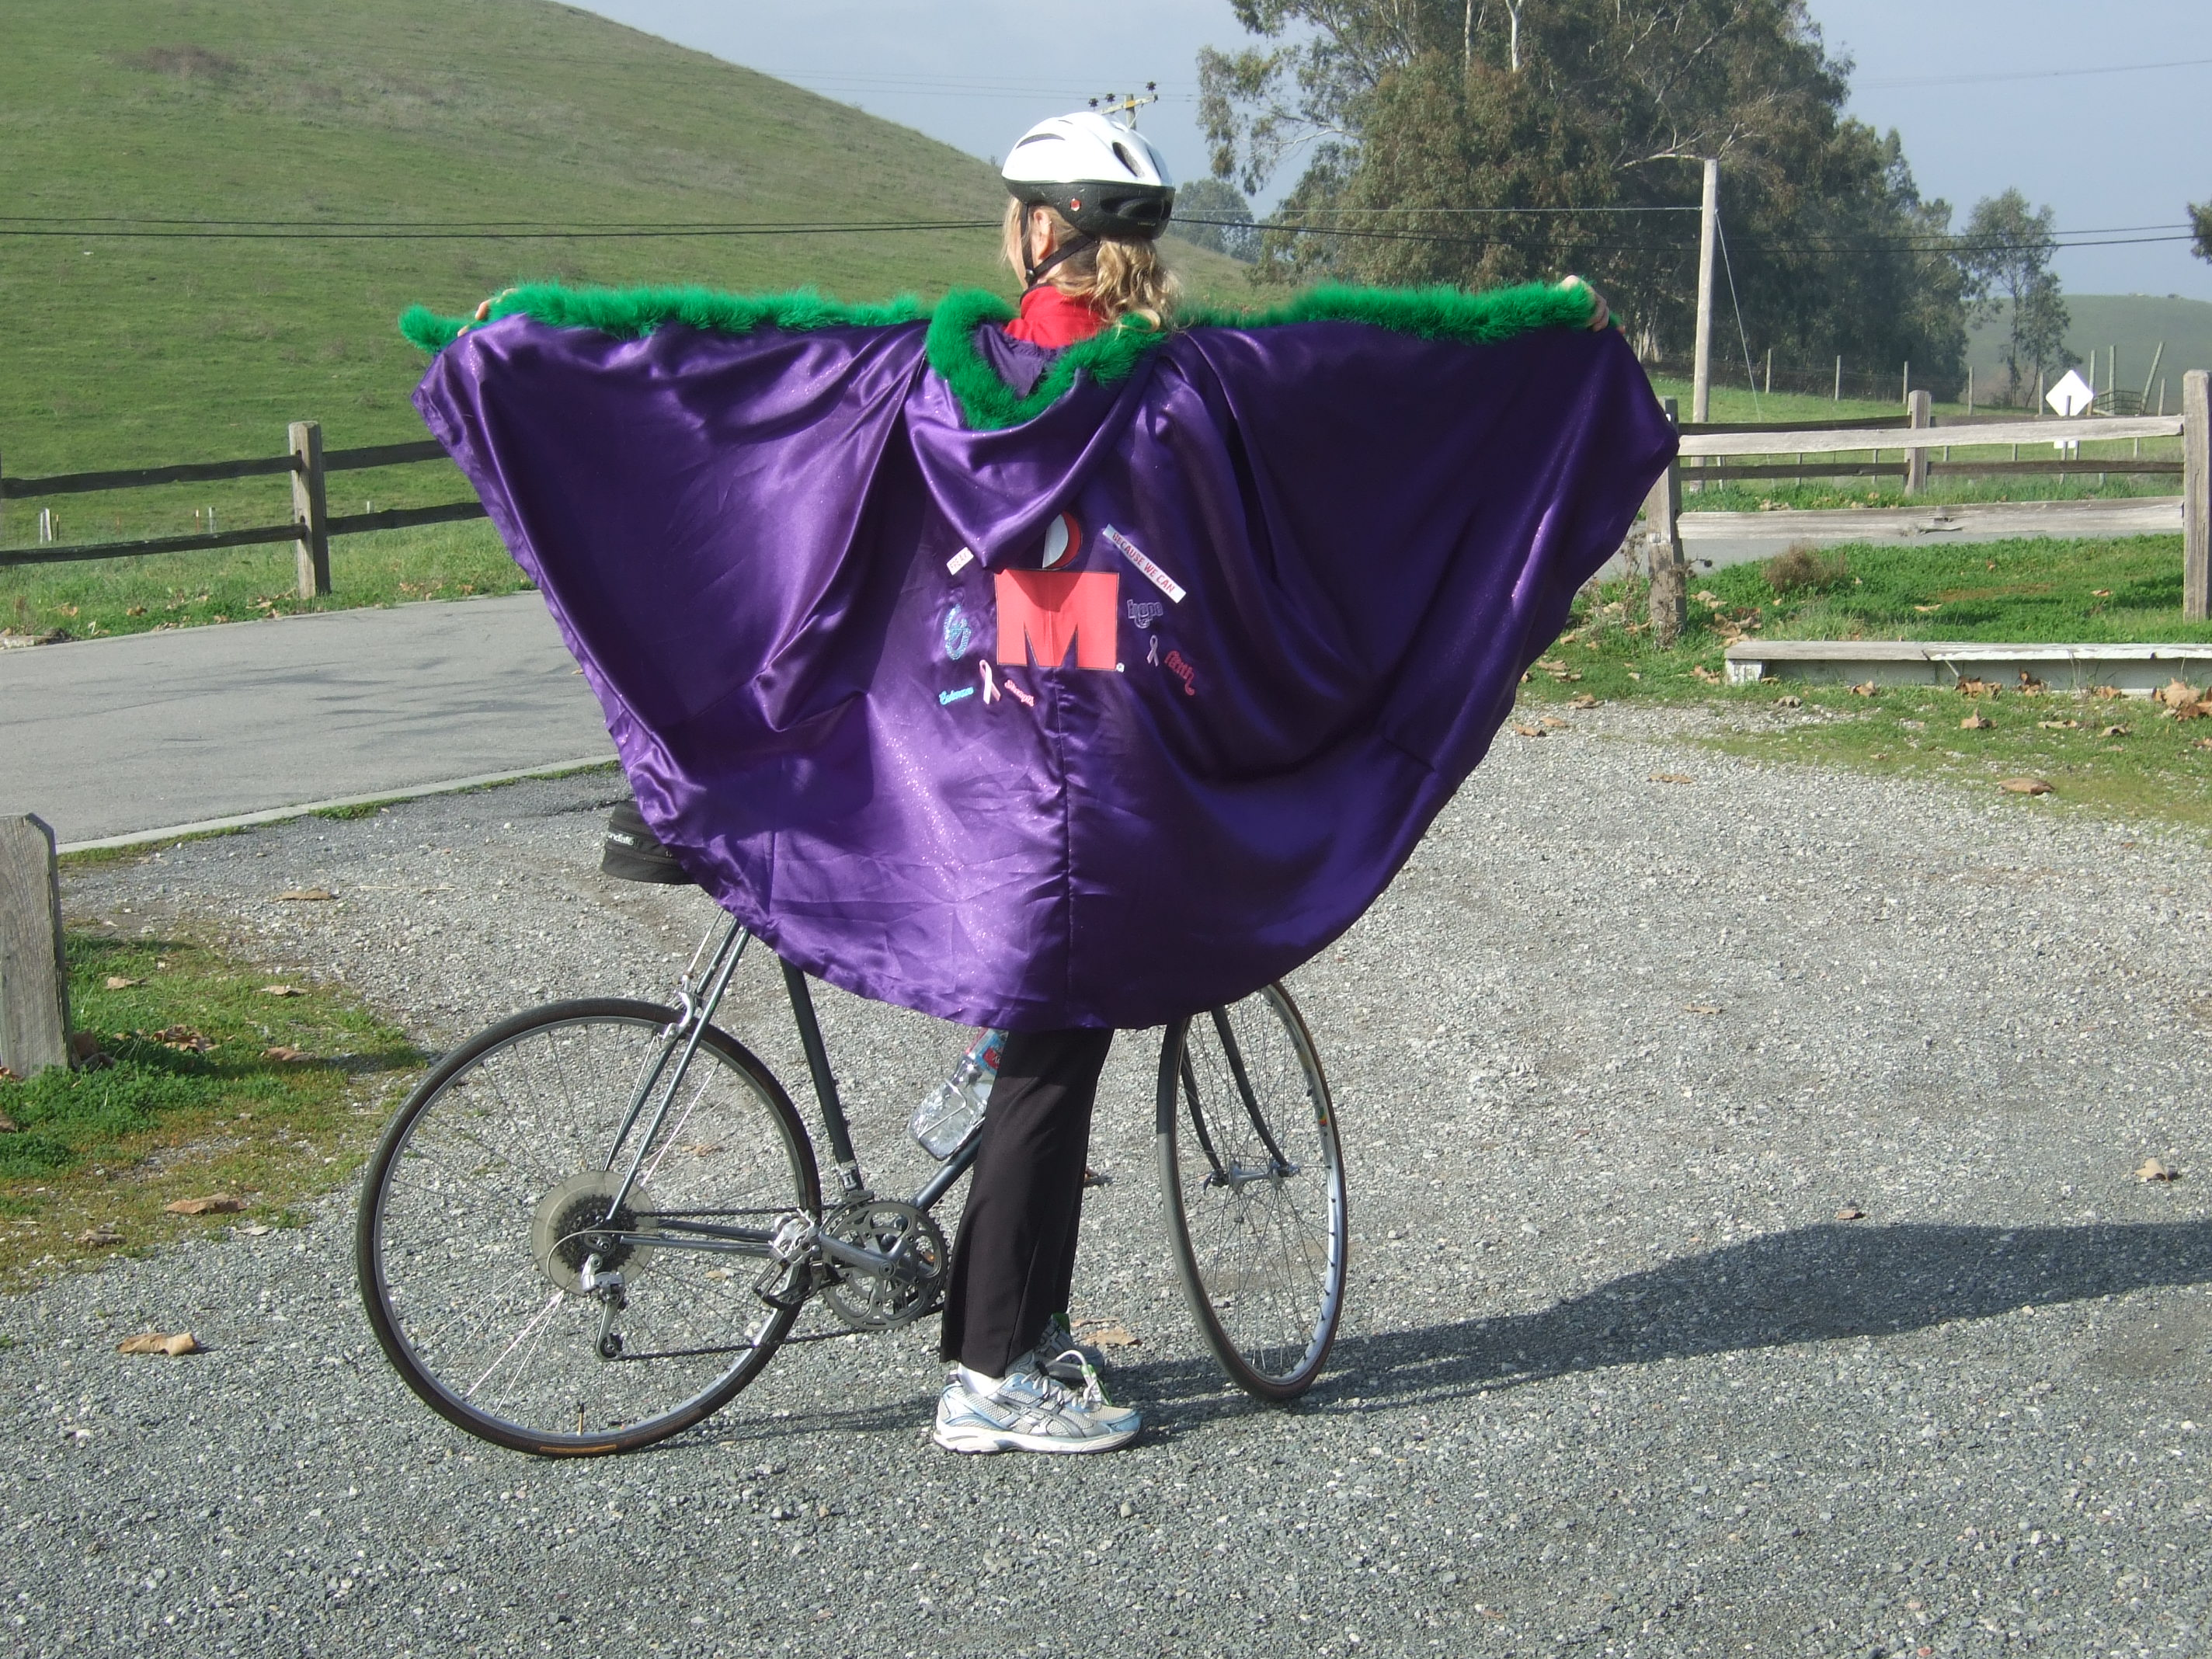 the spirit cape out in the Petaluma countryside.